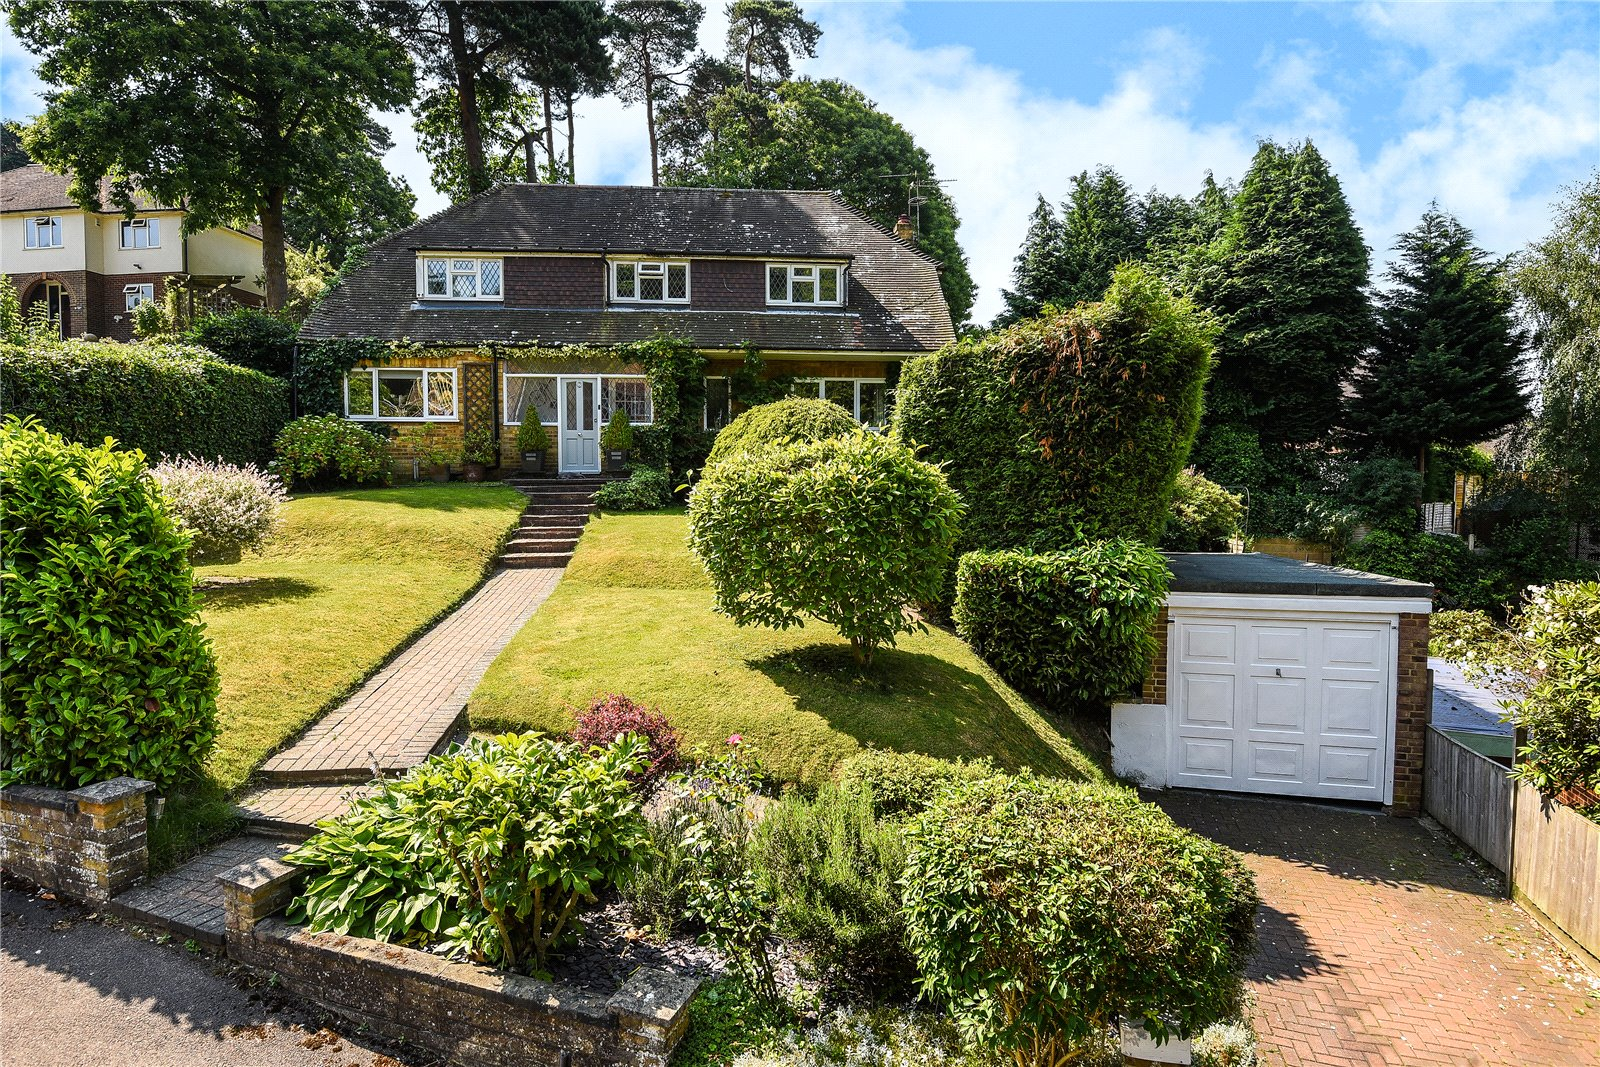 4 Bedrooms Detached House for sale in Beaufront Road, Camberley, Surrey, GU15